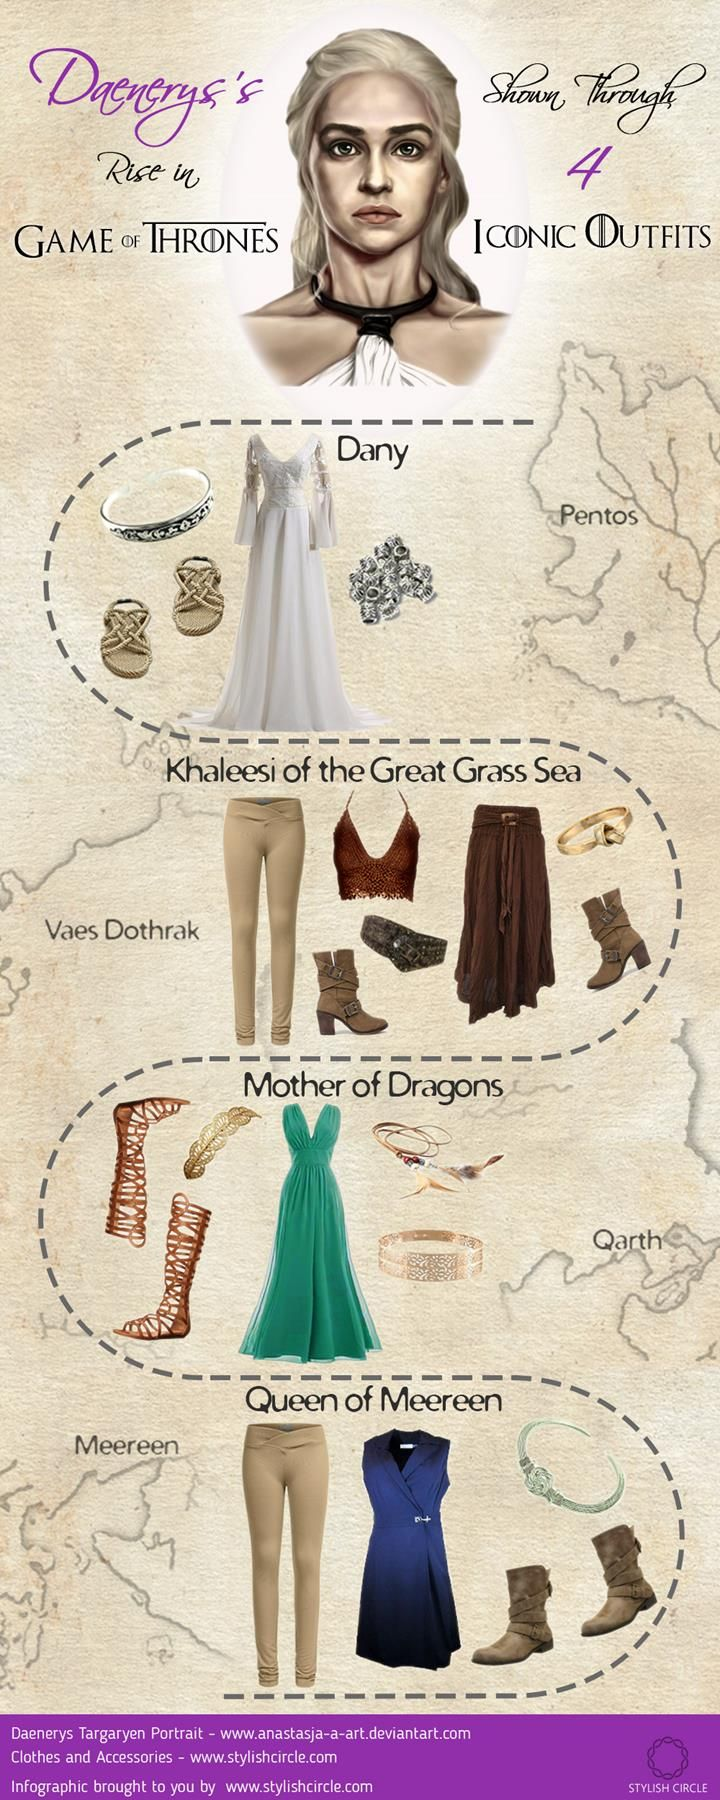 How to dress like Daenerys Targaryen #gameofthrones #daenerys